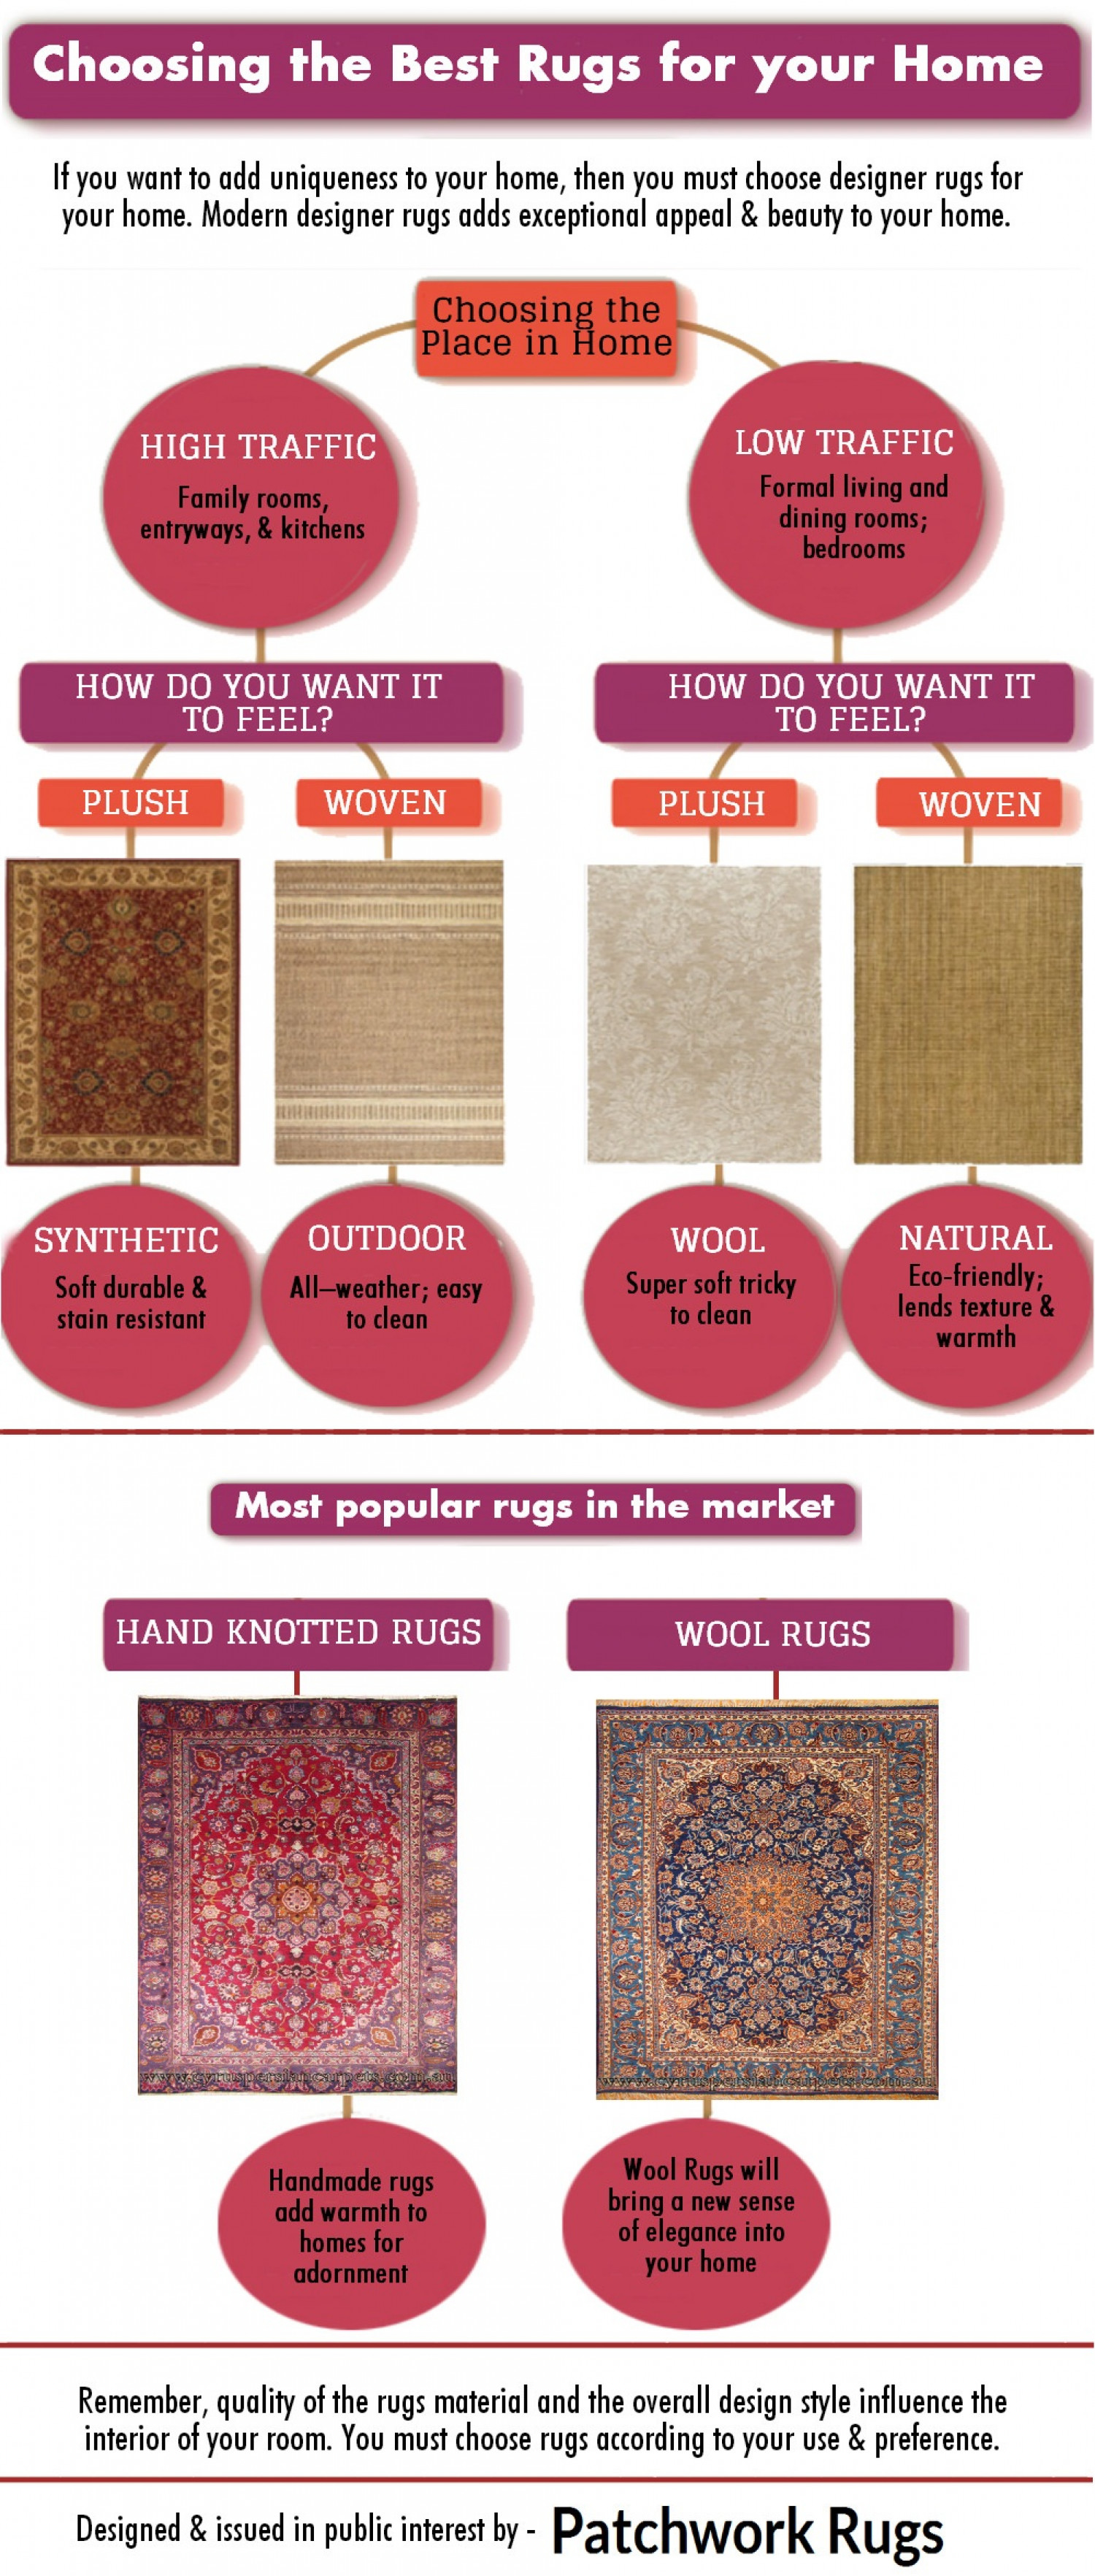 Choosing the Best Rugs for your Home Infographic